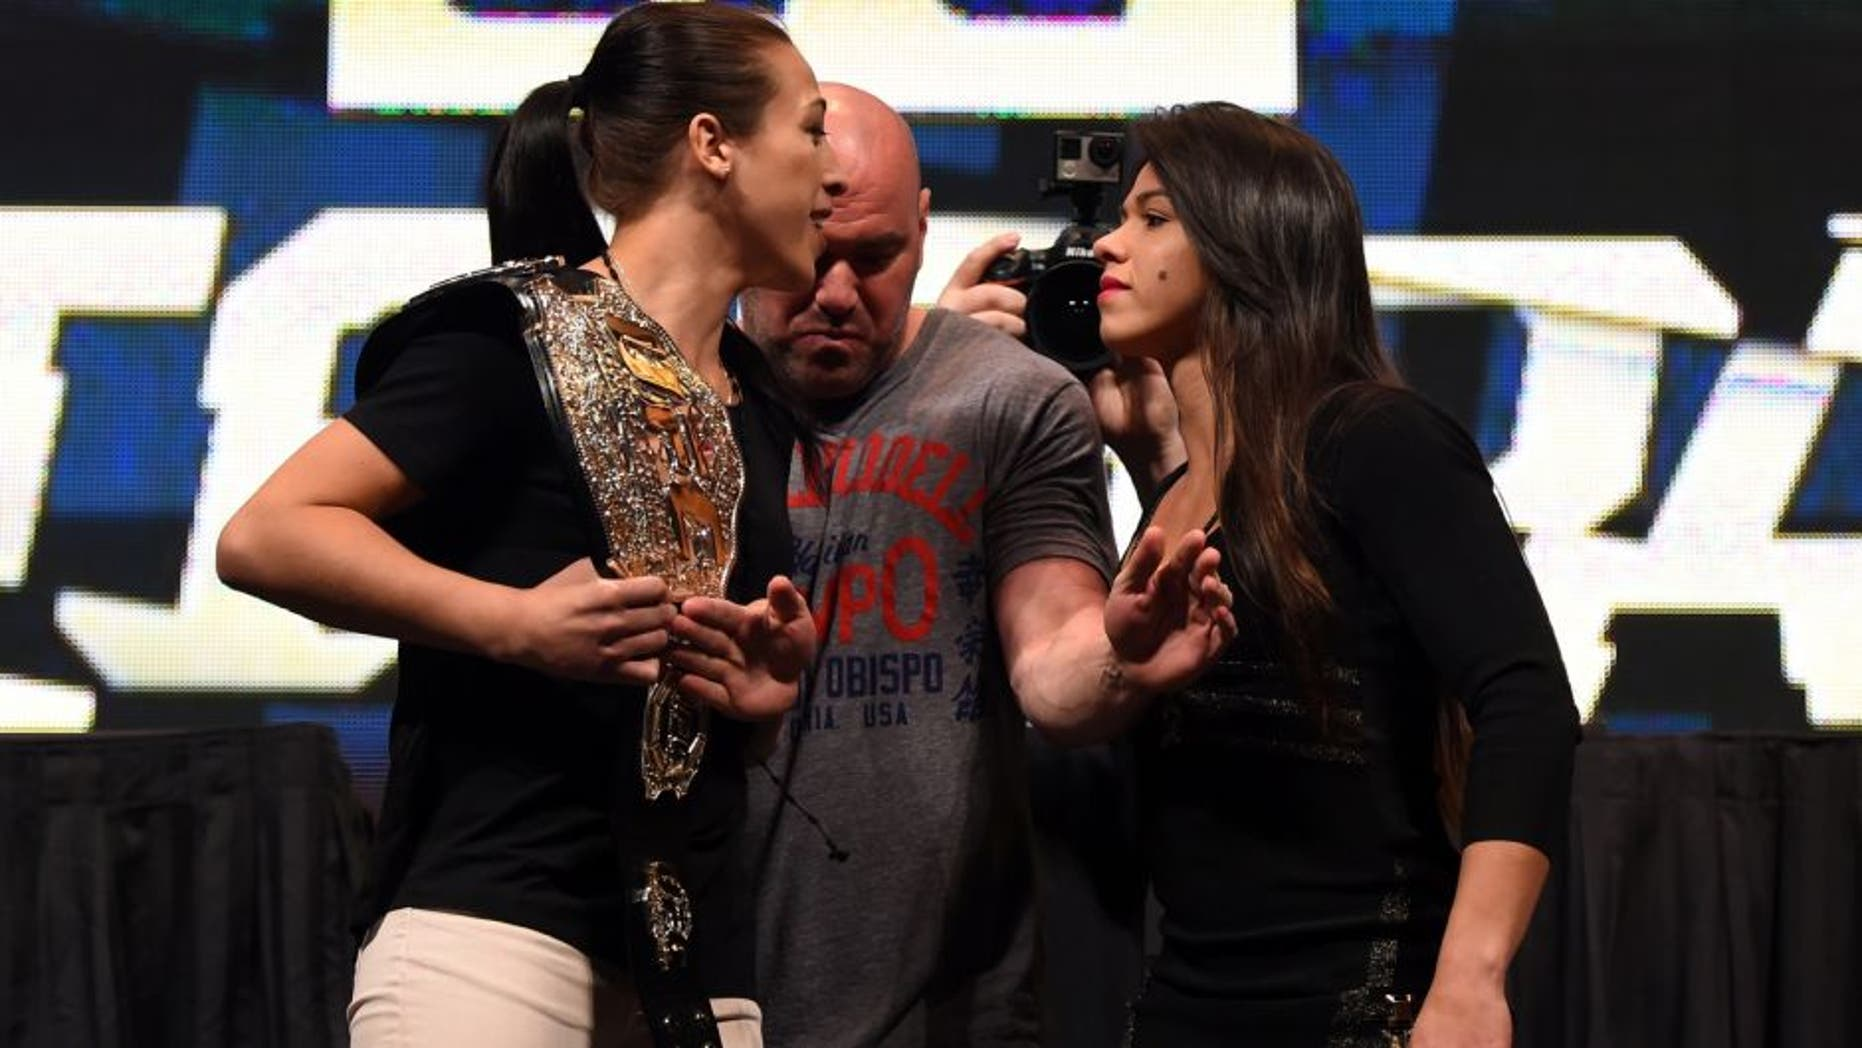 LAS VEGAS, NV - MARCH 04: (L-R) Opponents Joanna Jedrzejczyk and Claudia Gadelha face off during the UFC Unstoppable launch press conference at the MGM Grand Garden Arena on March 4, 2016 in Henderson, Nevada. (Photo by Josh Hedges/Zuffa LLC/Zuffa LLC via Getty Images)